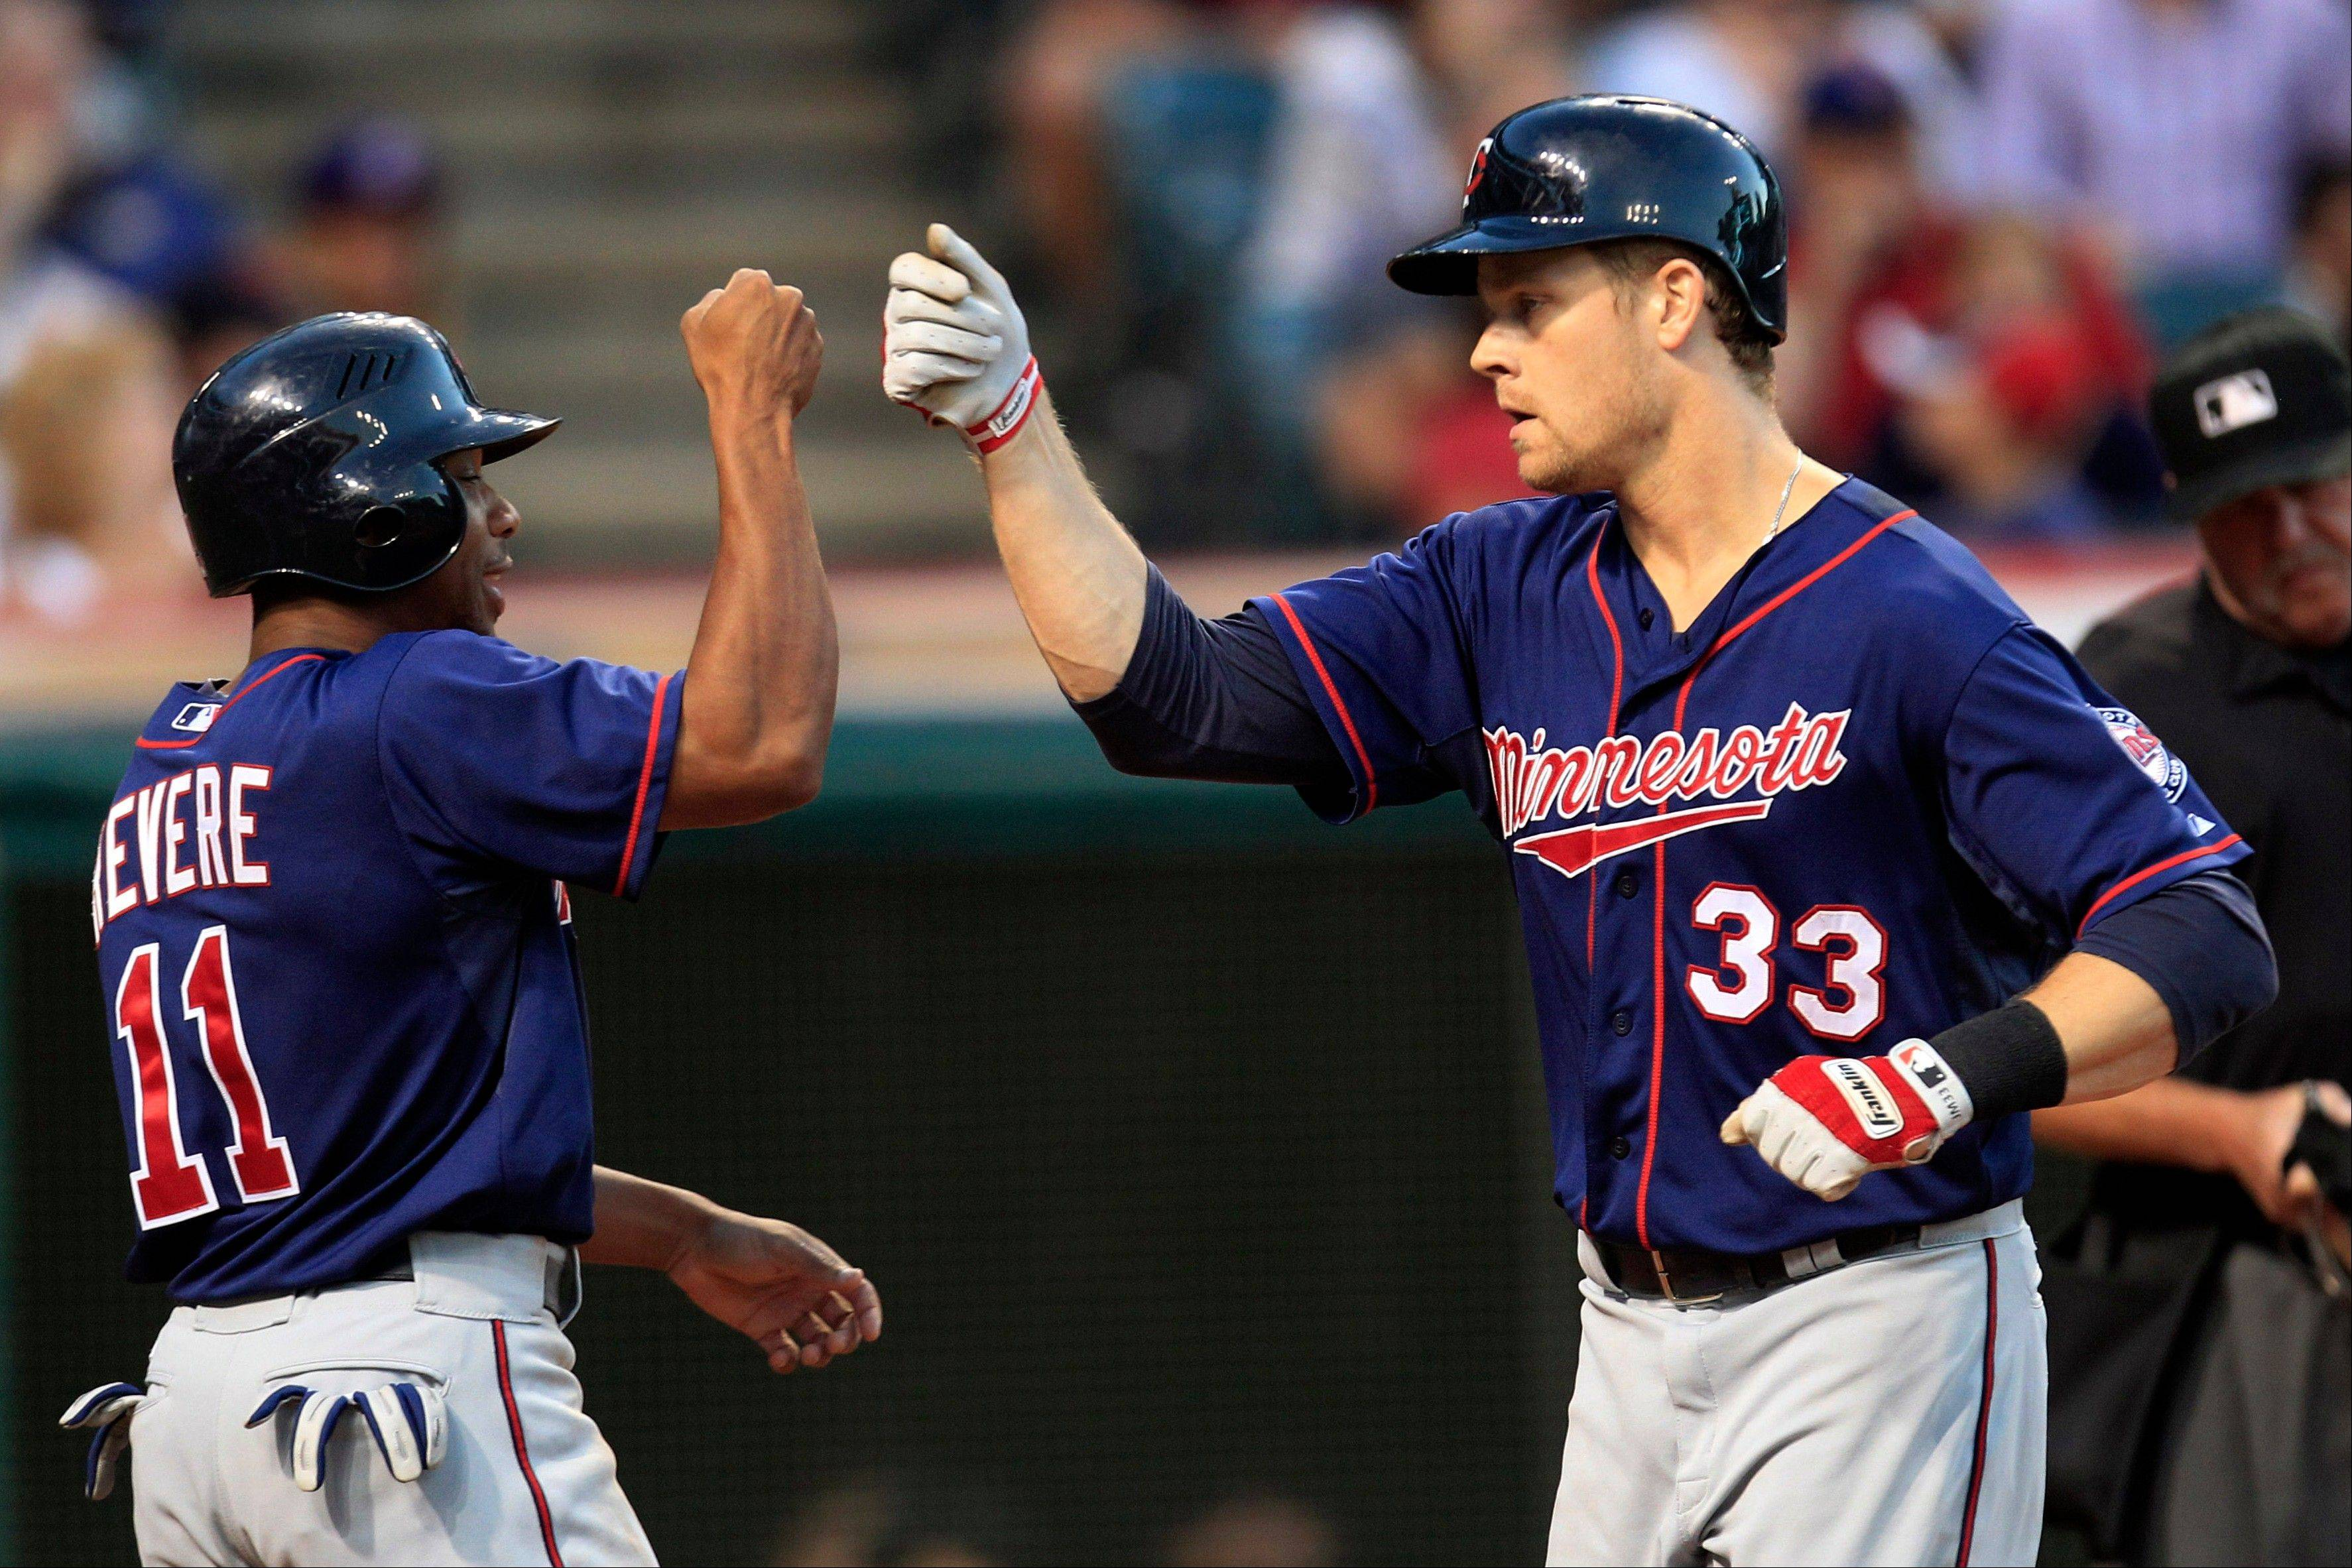 The Twins' Ben Revere, left, congratulates Justin Morneau on his two-run home run off Indians pitcher Josh Tomlin in the fourth inning Monday in Cleveland.